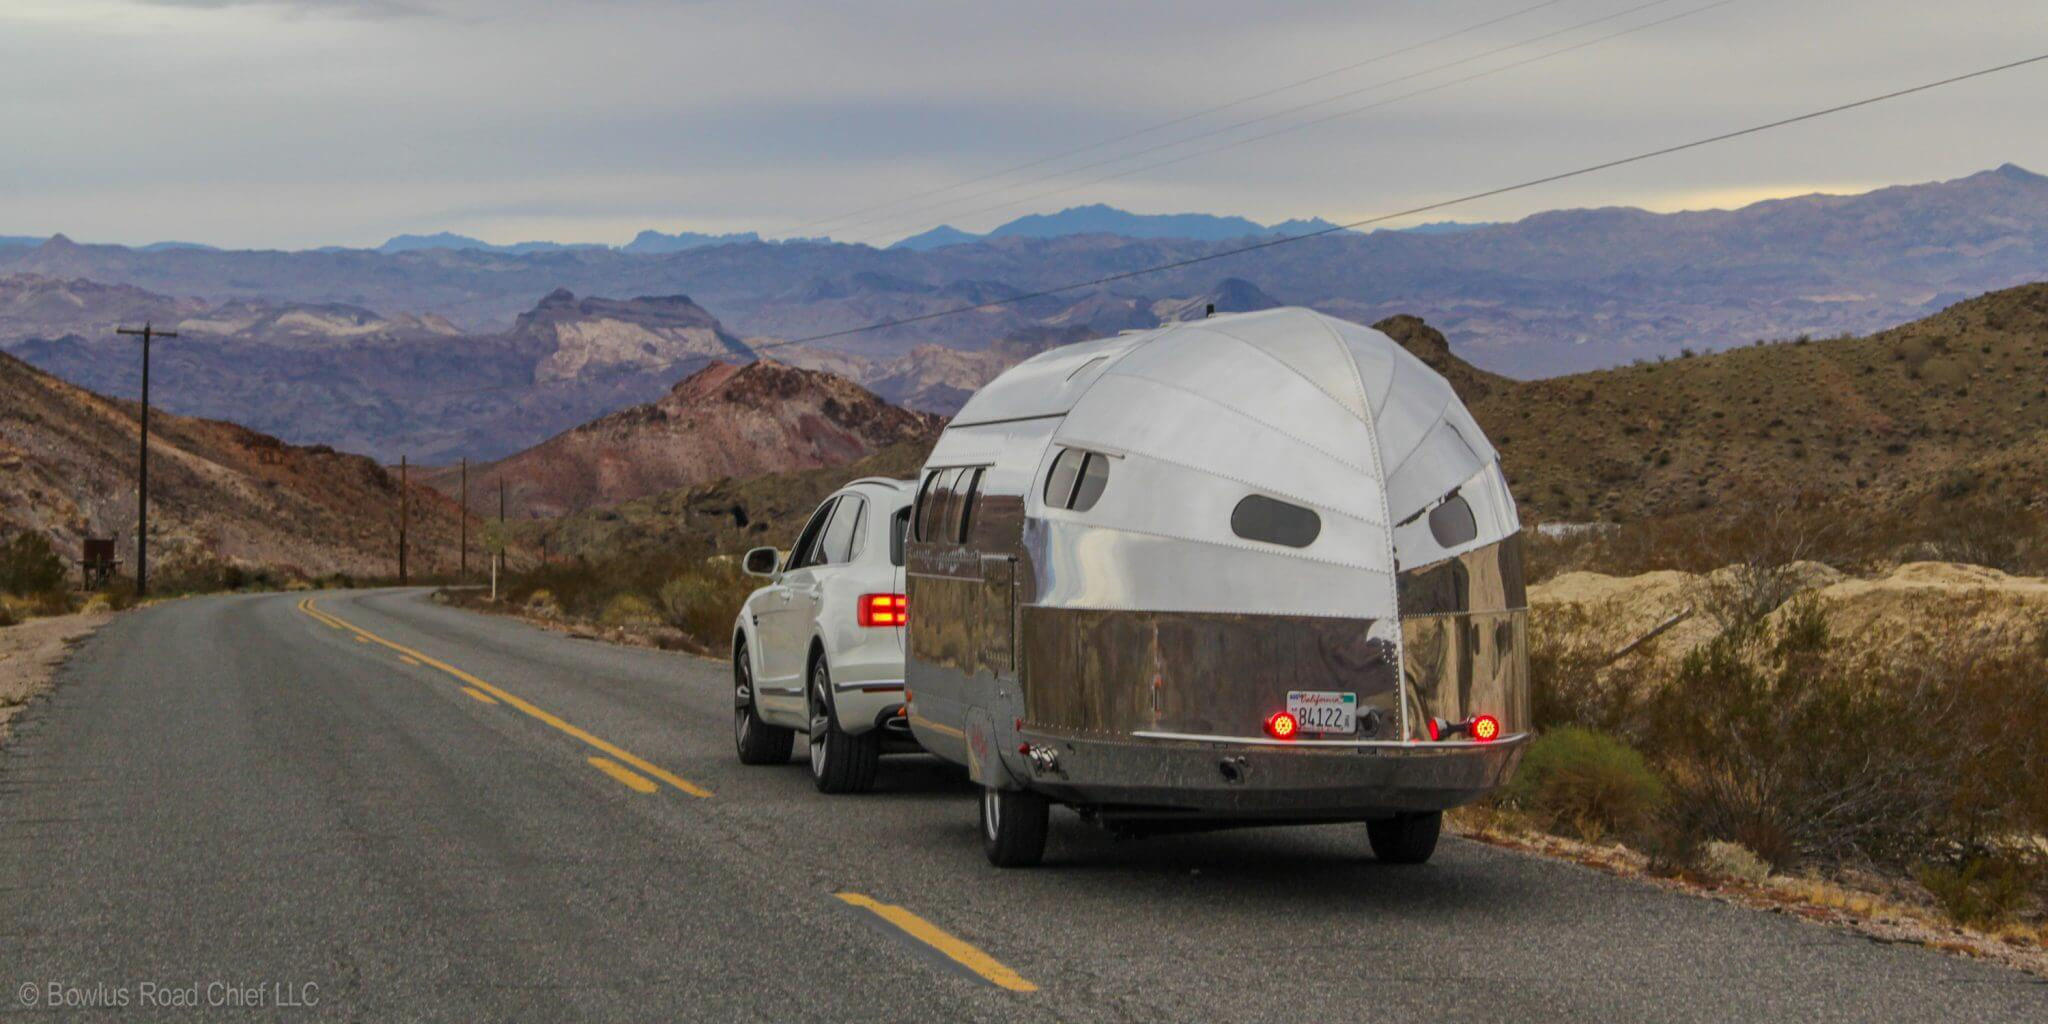 We were looking for a light, easily towable trailer and came across the Bowlus.